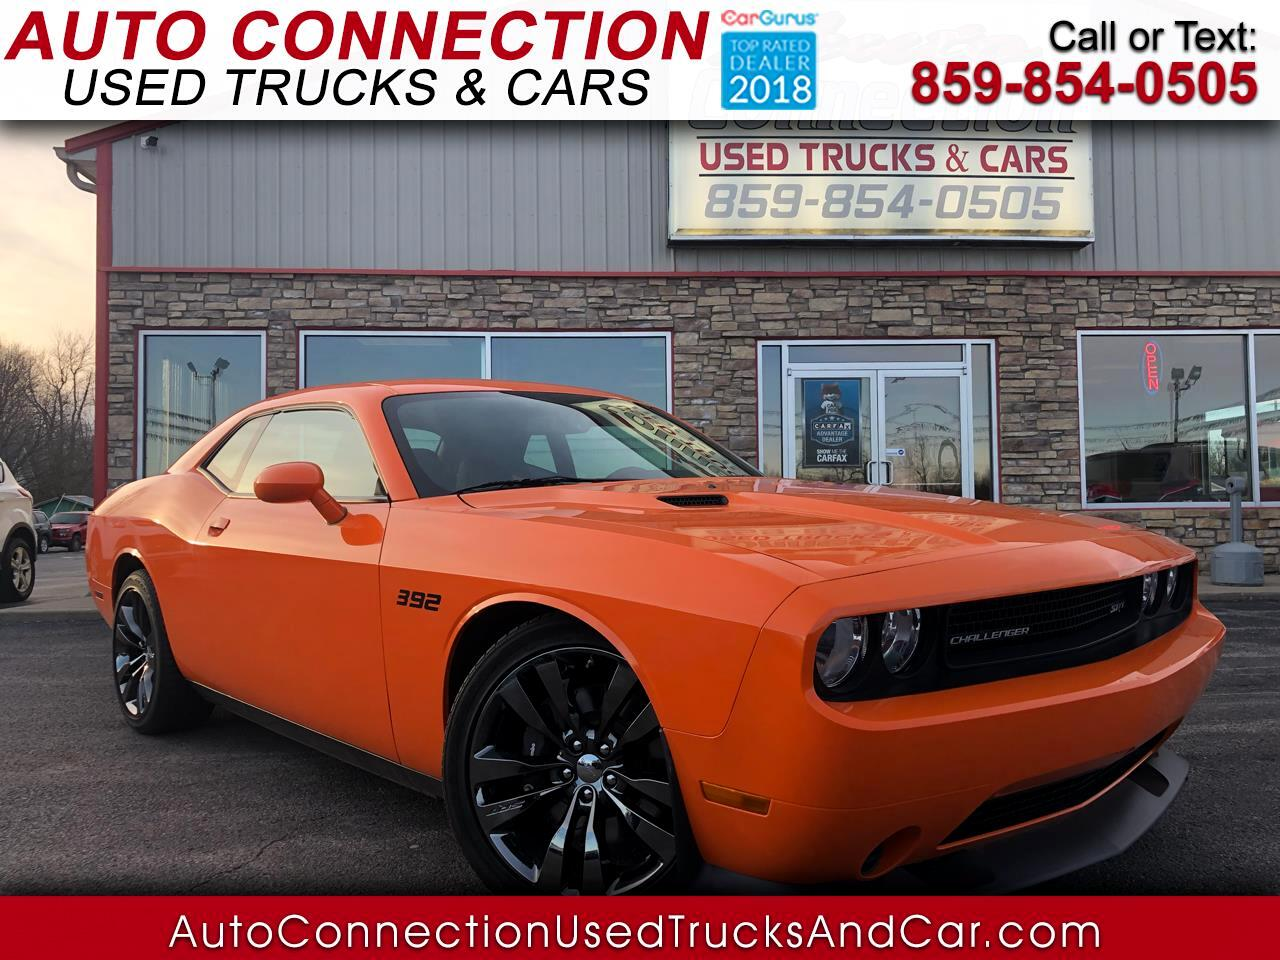 2014 Dodge Challenger 2dr Cpe SRT8 Core